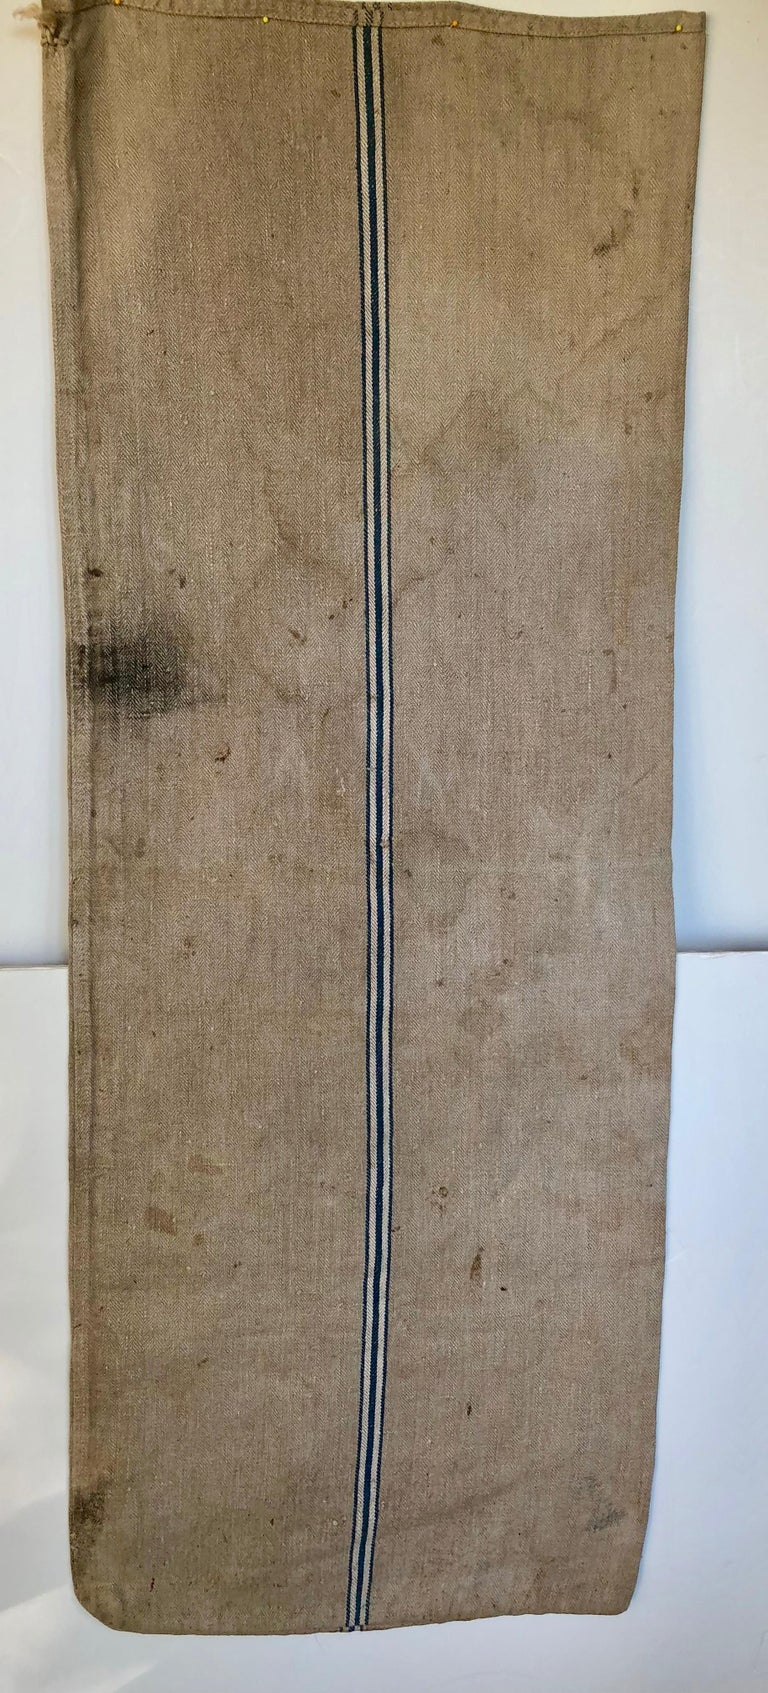 Early German Handwoven Grain Sack with Original Calligraphy and Graphics For Sale 3